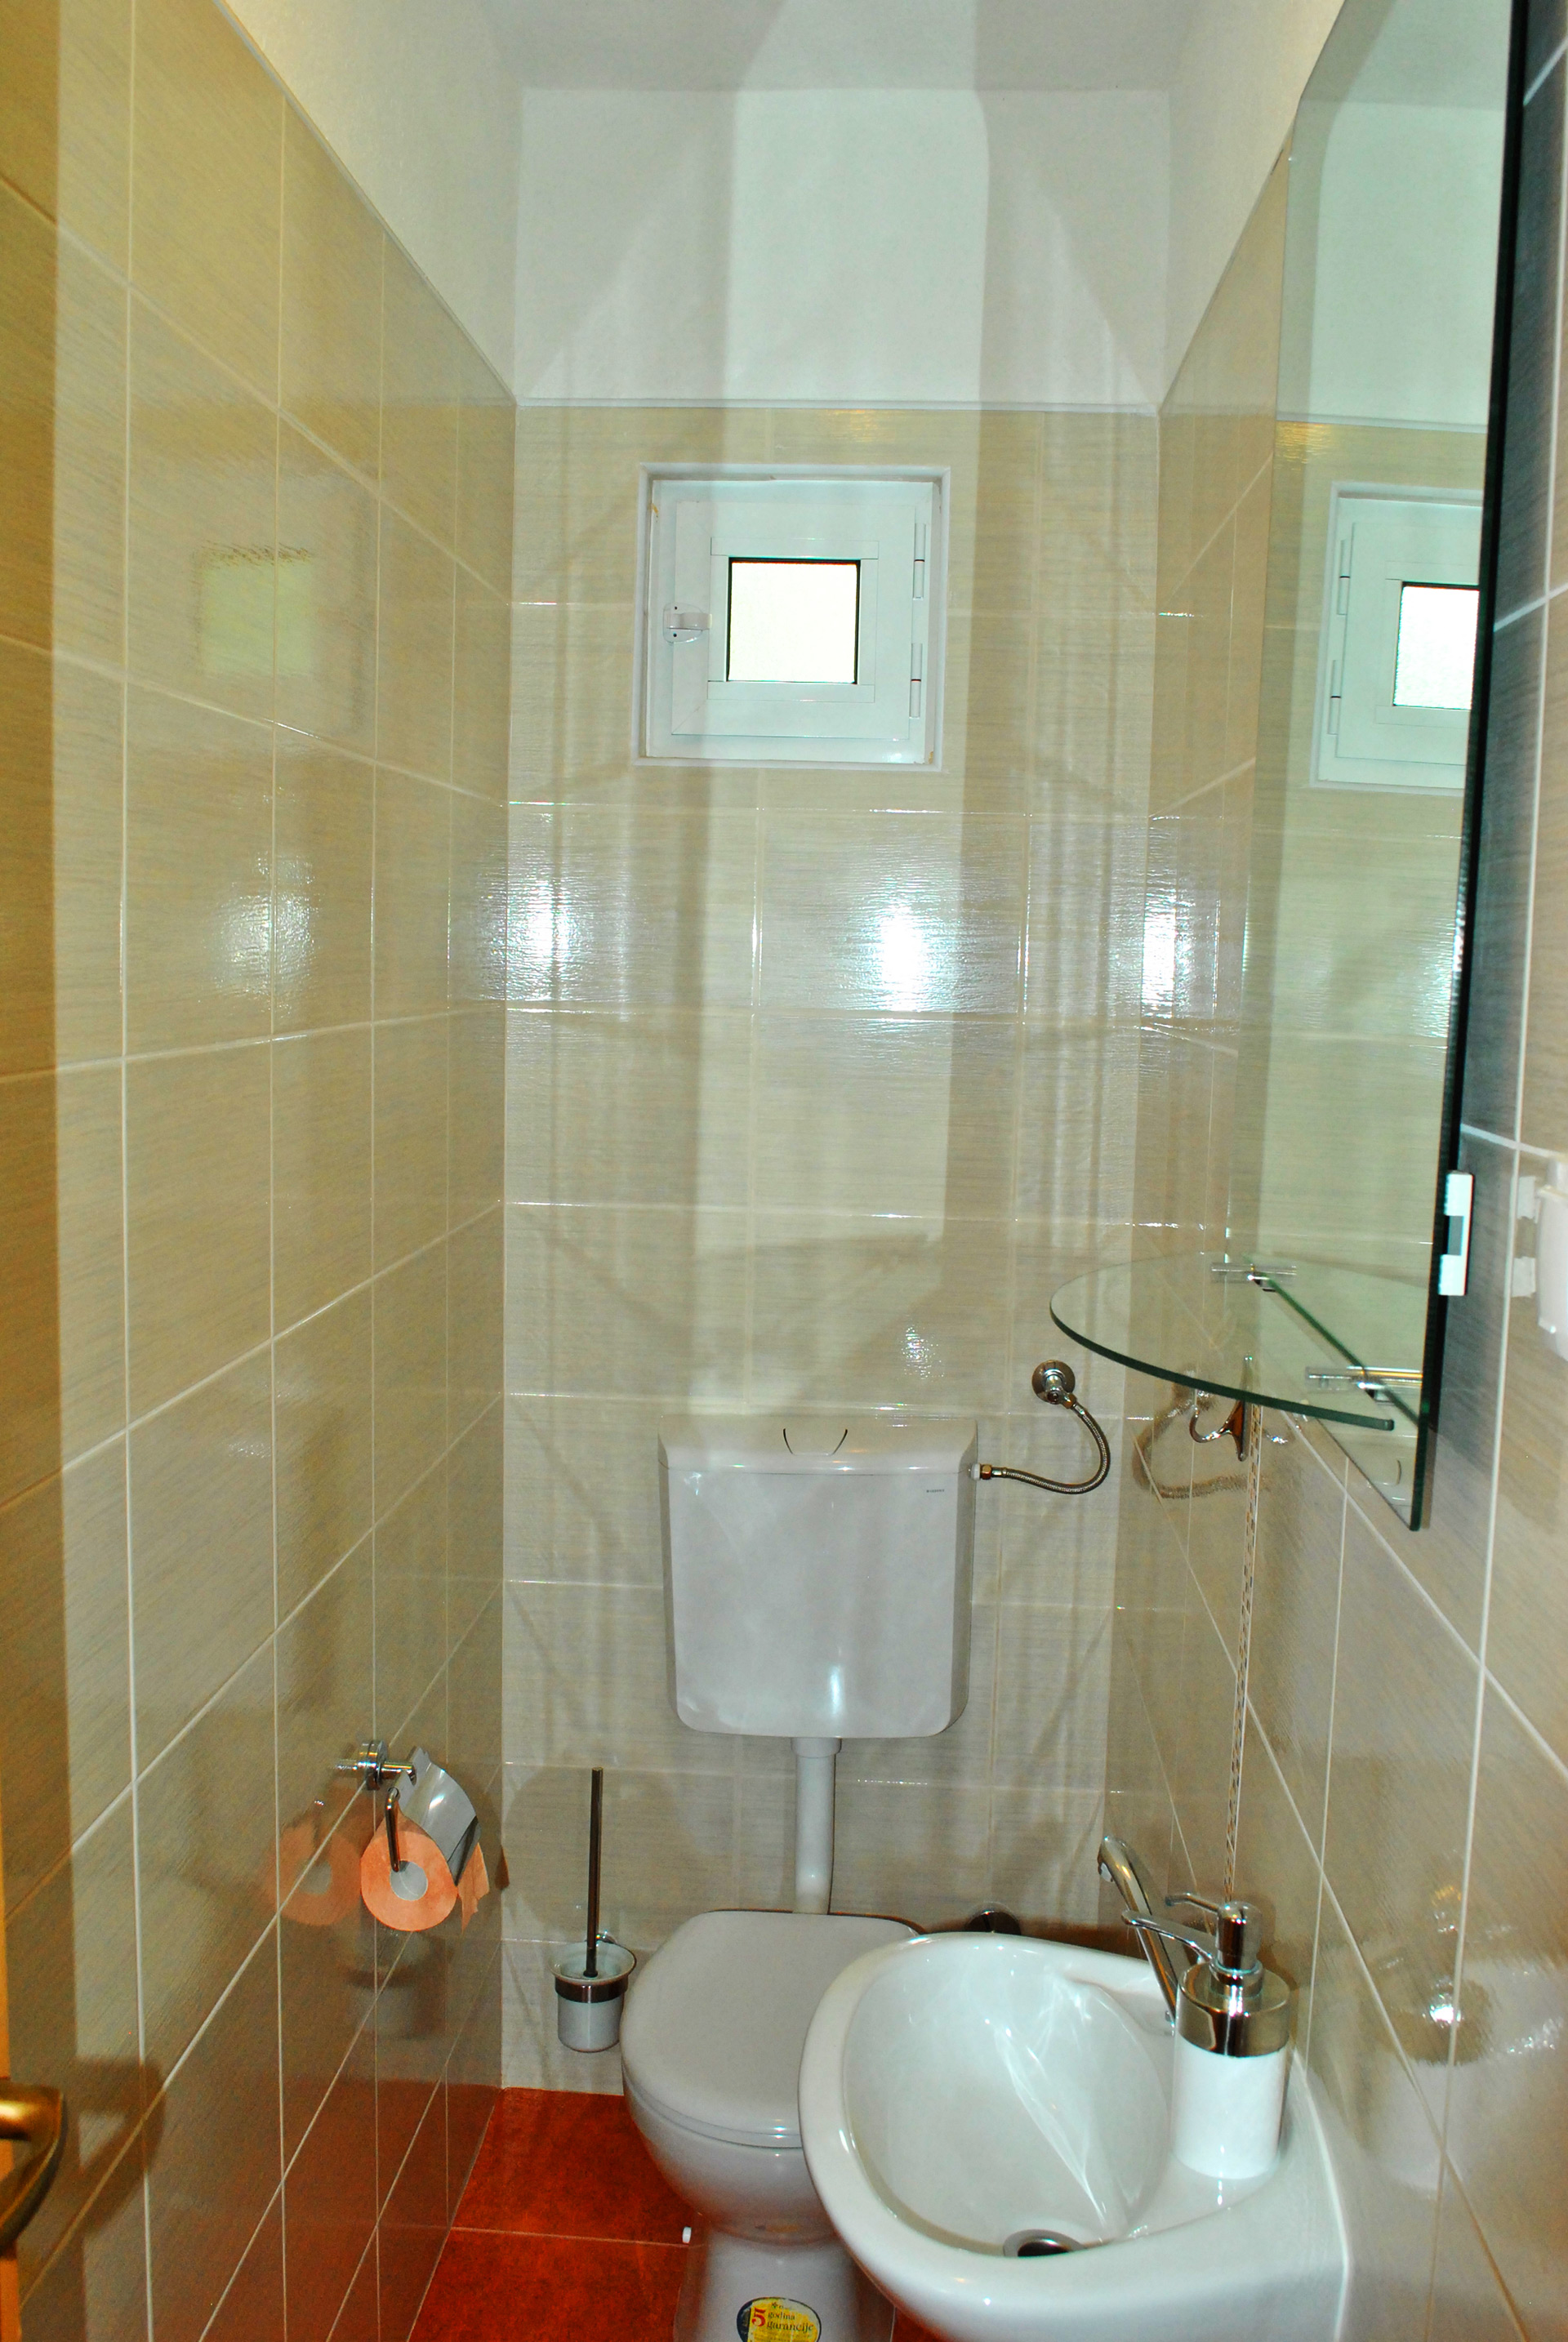 apartmenta2-bathroom2